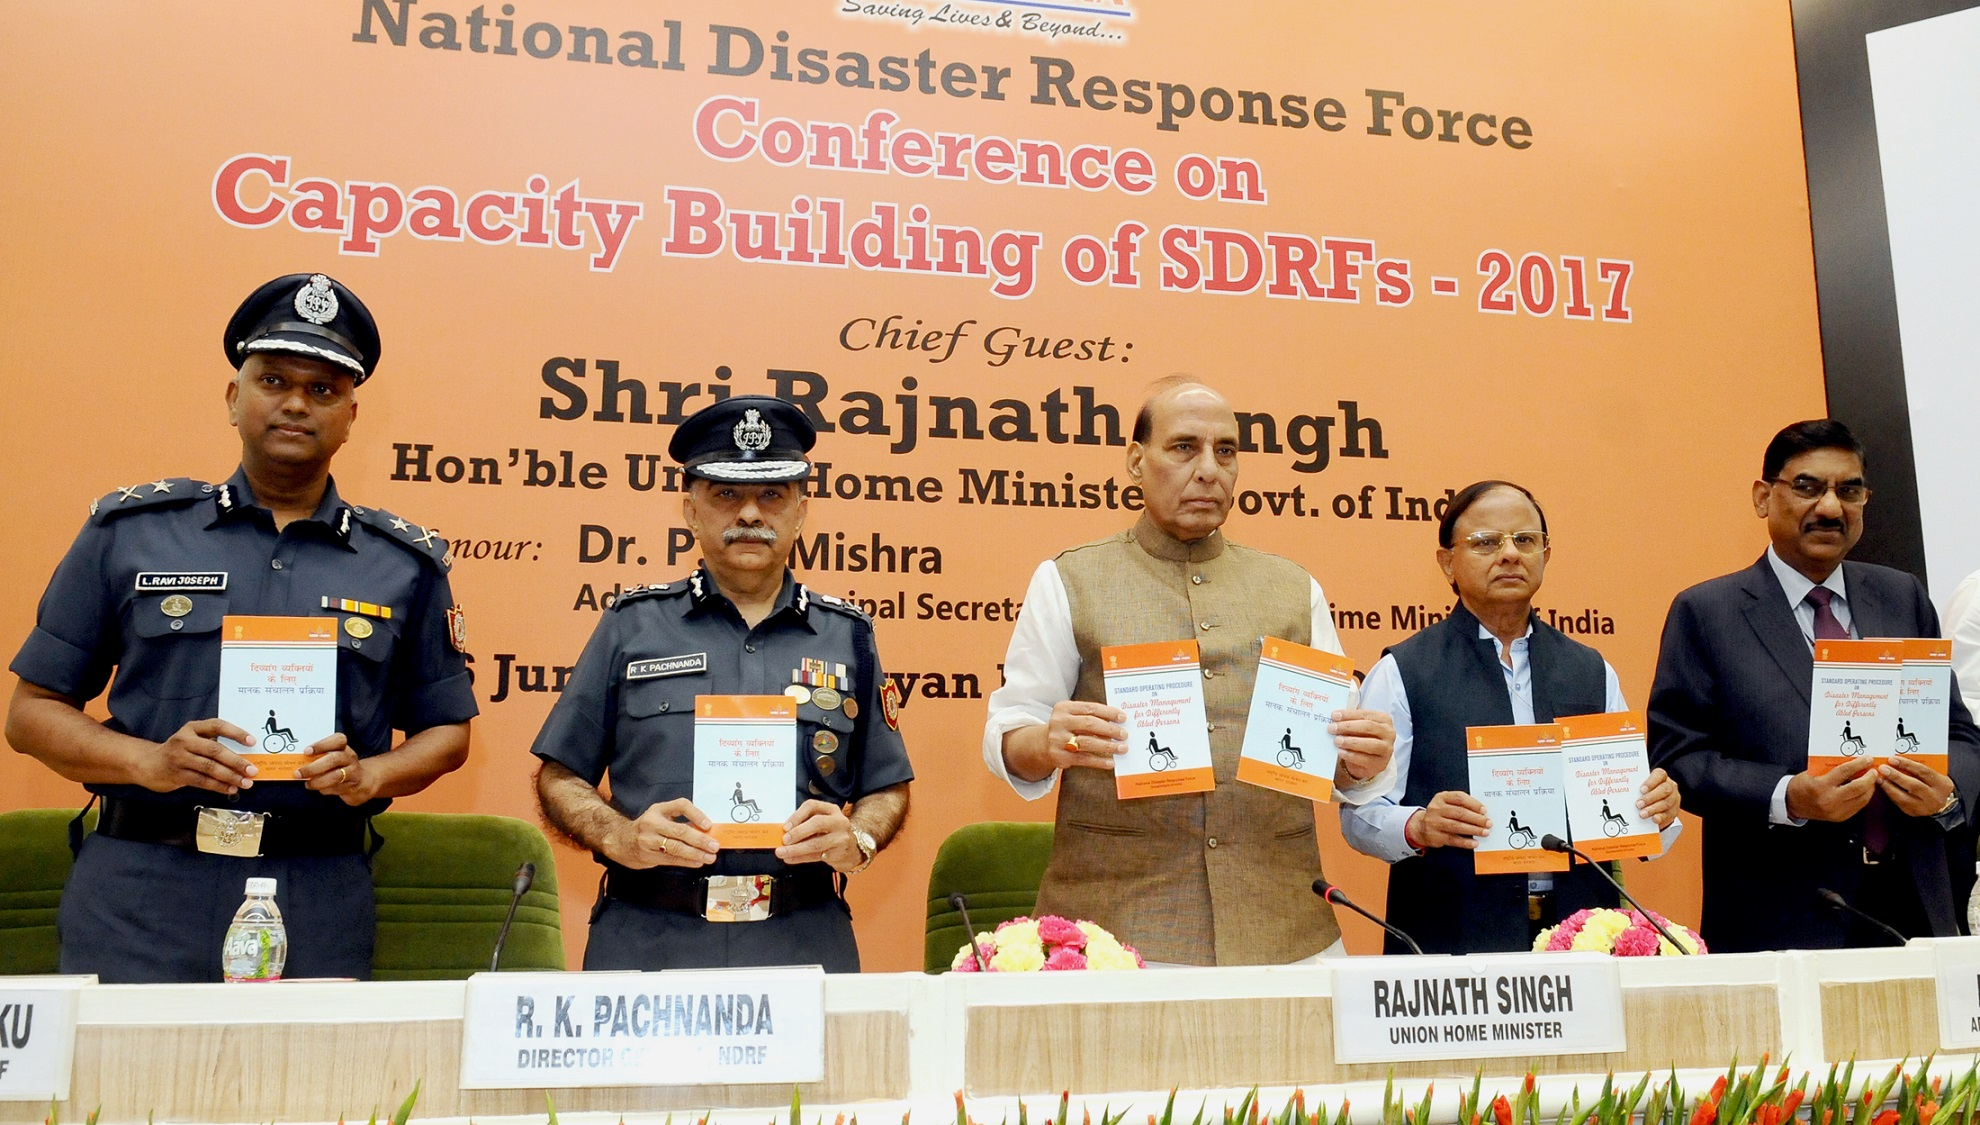 """The Union Home Minister, Shri Rajnath Singh releasing the 'Standard Operating Procedure on Disaster Management for Differently Abled Persons', at the inauguration of the National Level Conference on """"Capacity Building of SDRF-2017"""", organised by the NDRF, in New Delhi on June 06, 2017. The Additional Principal Secretary to the Prime Minister, Dr. P. K. Mishra and the DG, NDRF, Shri R.K. Pachnanda are also seen."""